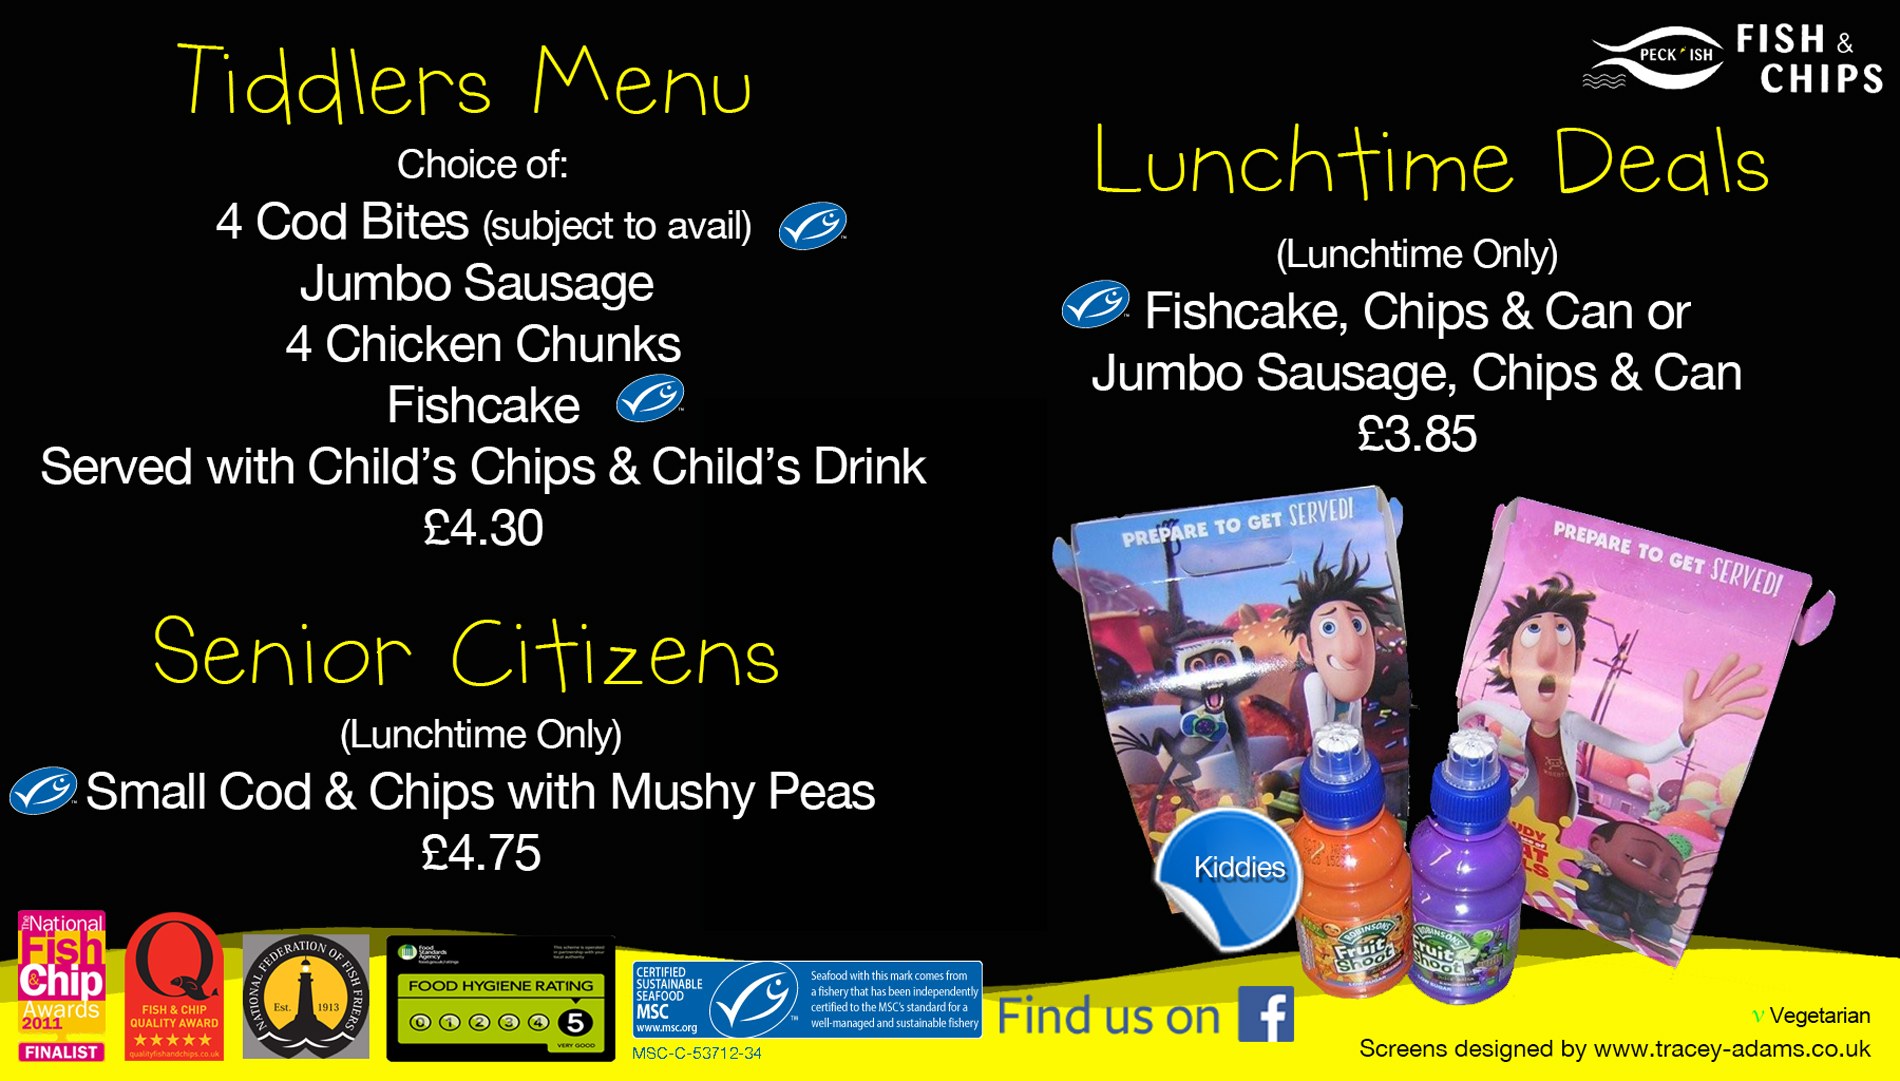 Peckish fish and chips menu 4